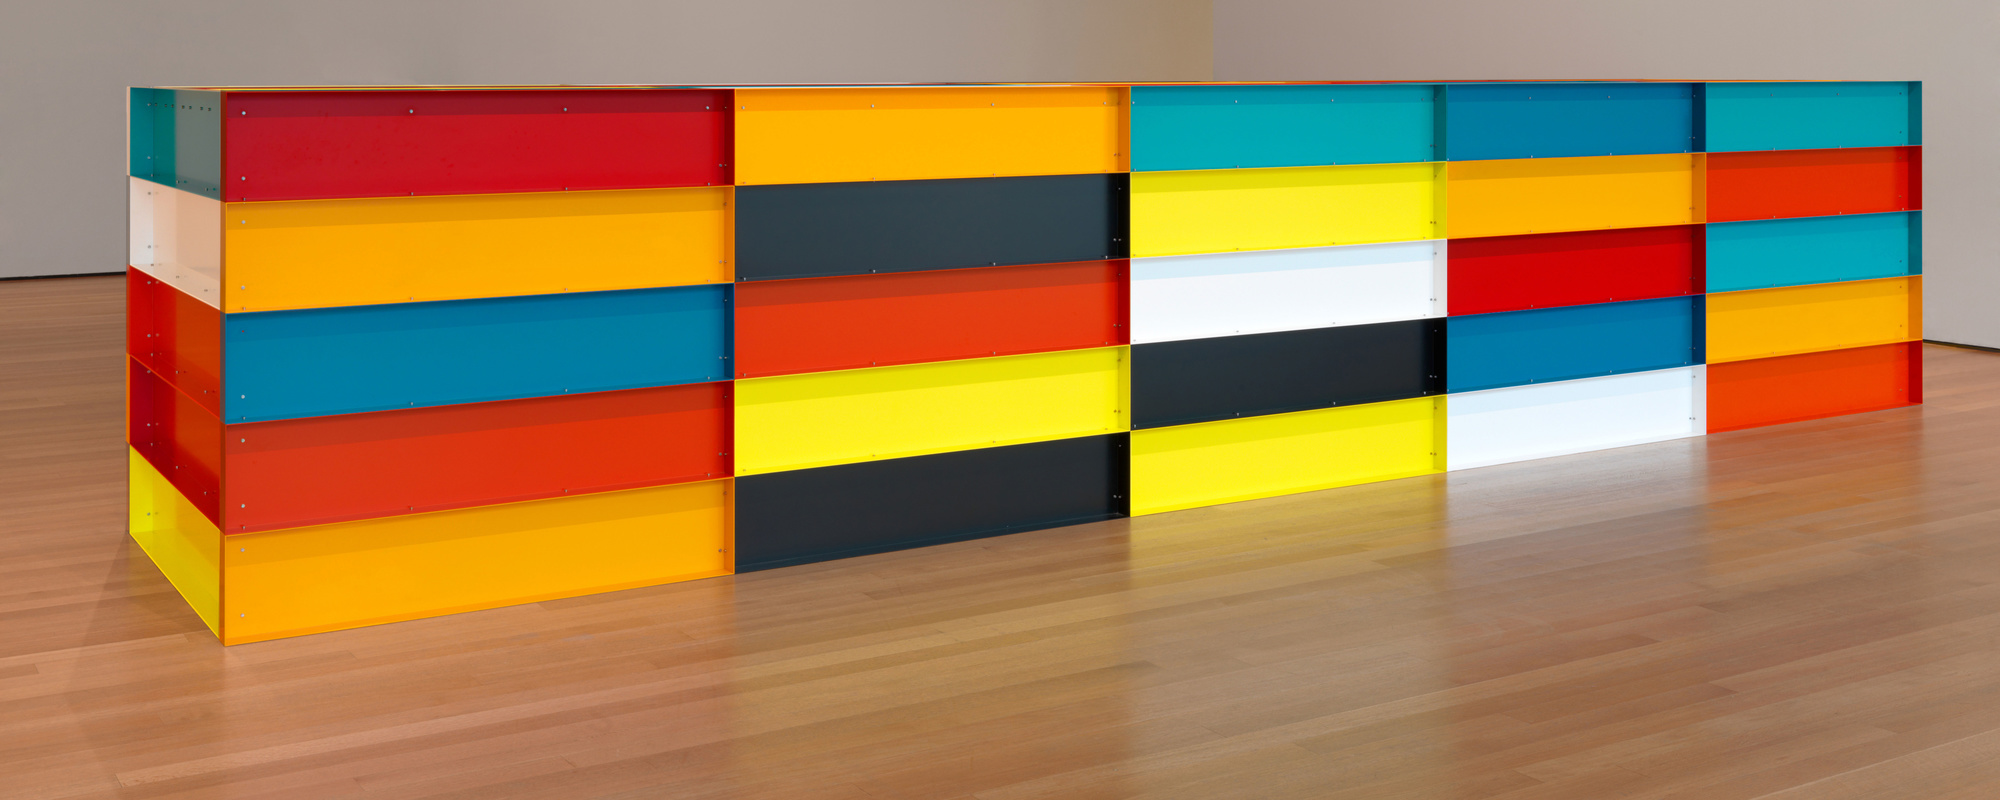 Donald Judd. Untitled. 1991. Enameled aluminum, 59″ × 24′ 7 1/4″ × 65″ (150 × 750 × 165 cm). The Museum of Modern Art, New York. Bequest of Richard S. Zeisler and gift of Abby Aldrich Rockefeller (both by exchange) and gift of Kathy Fuld, Agnes Gund, Patricia Cisneros, Doris Fisher, Mimi Haas, Marie-Josée and Henry R. Kravis, and Emily Spiegel. © 2019 Judd Foundation/Artists Rights Society (ARS), New York. Photo: John Wronn